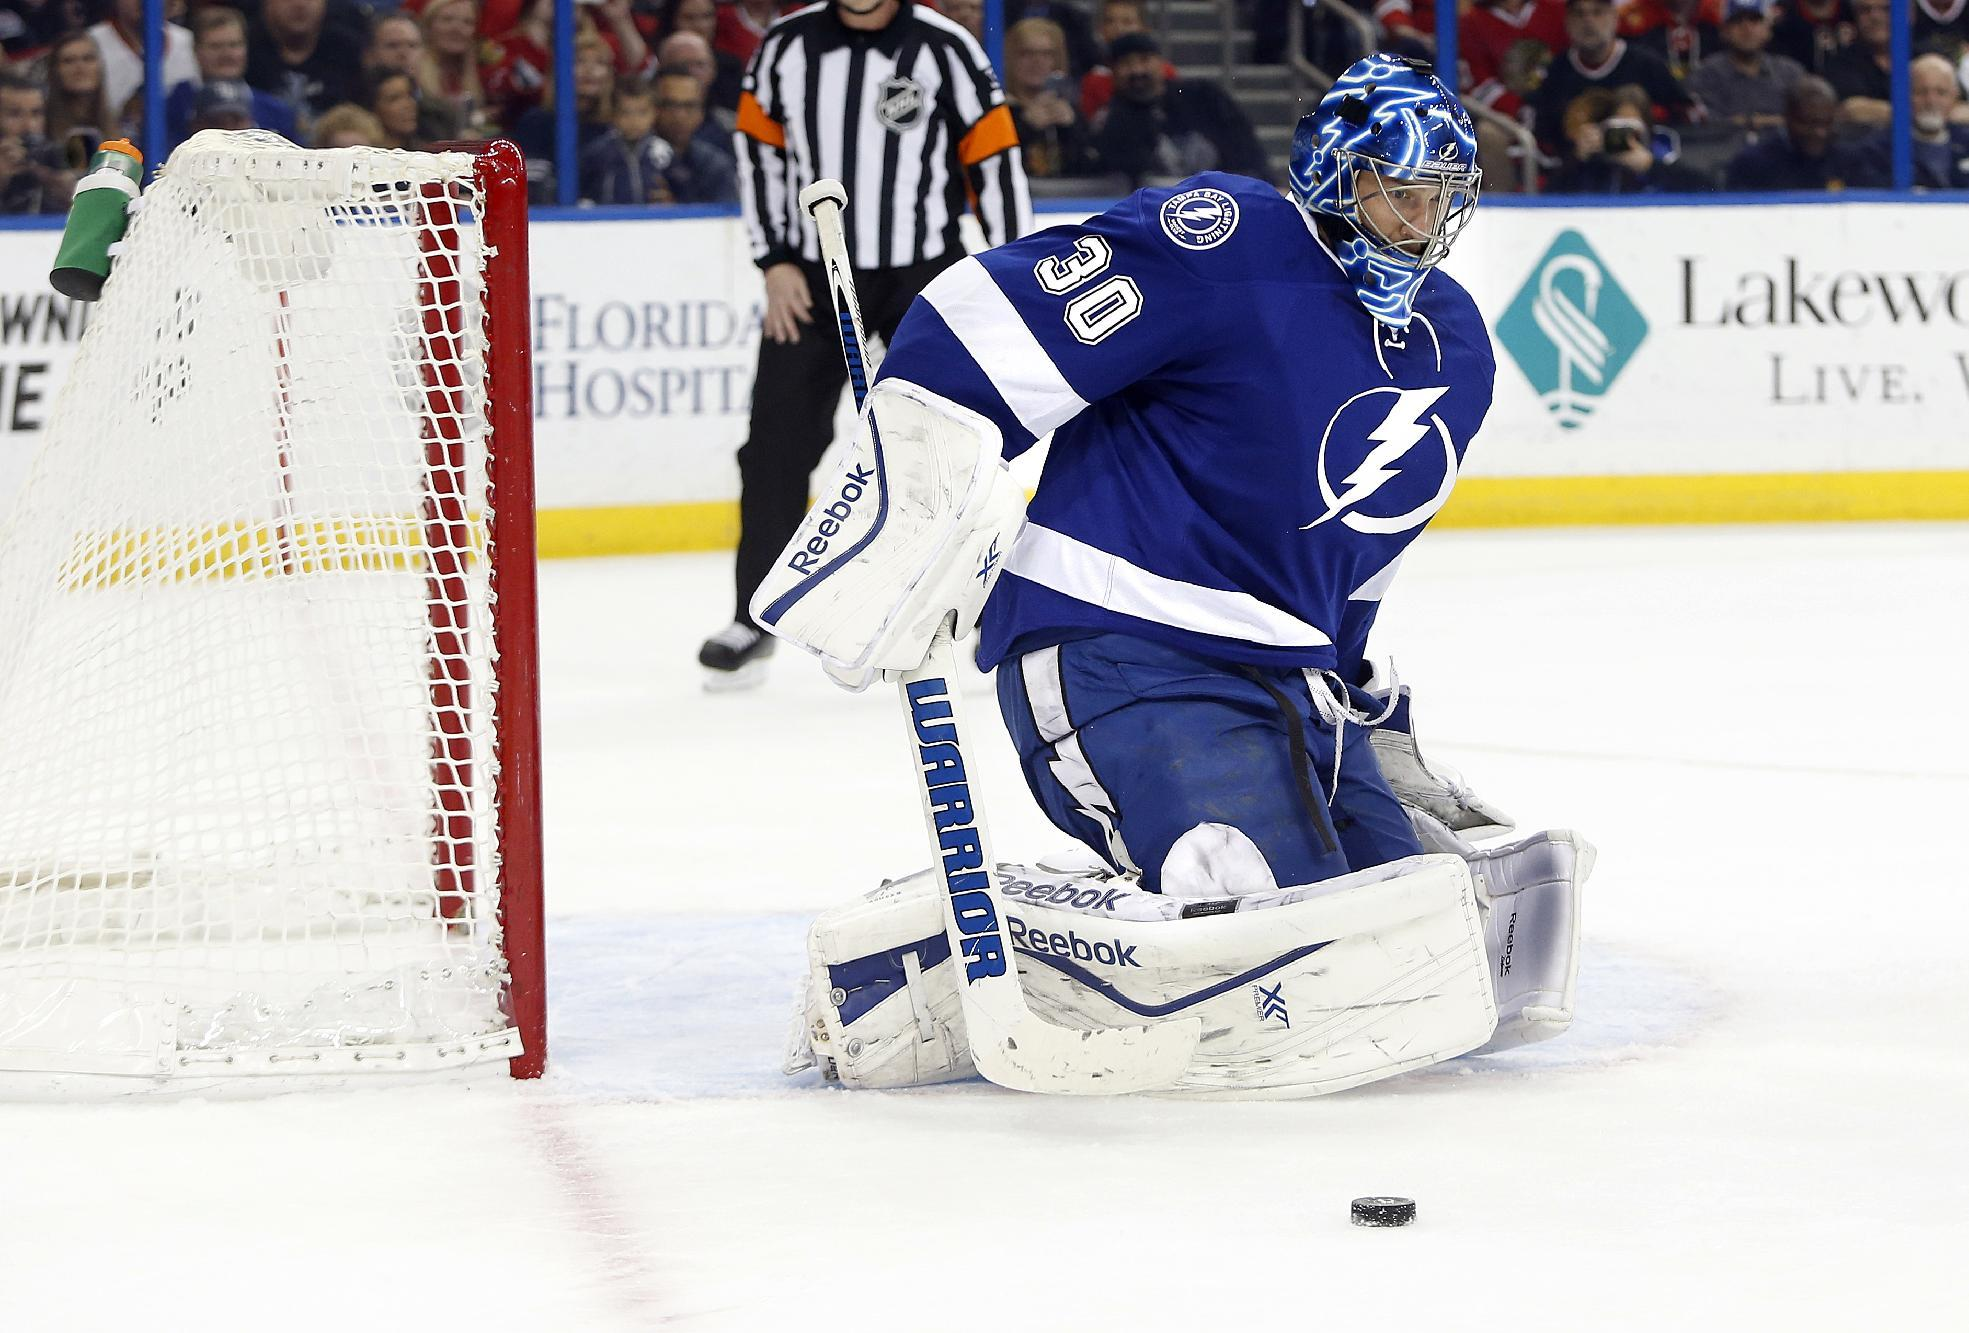 Bishop, Stamkos key Lightning's 4-0 win over Hawks